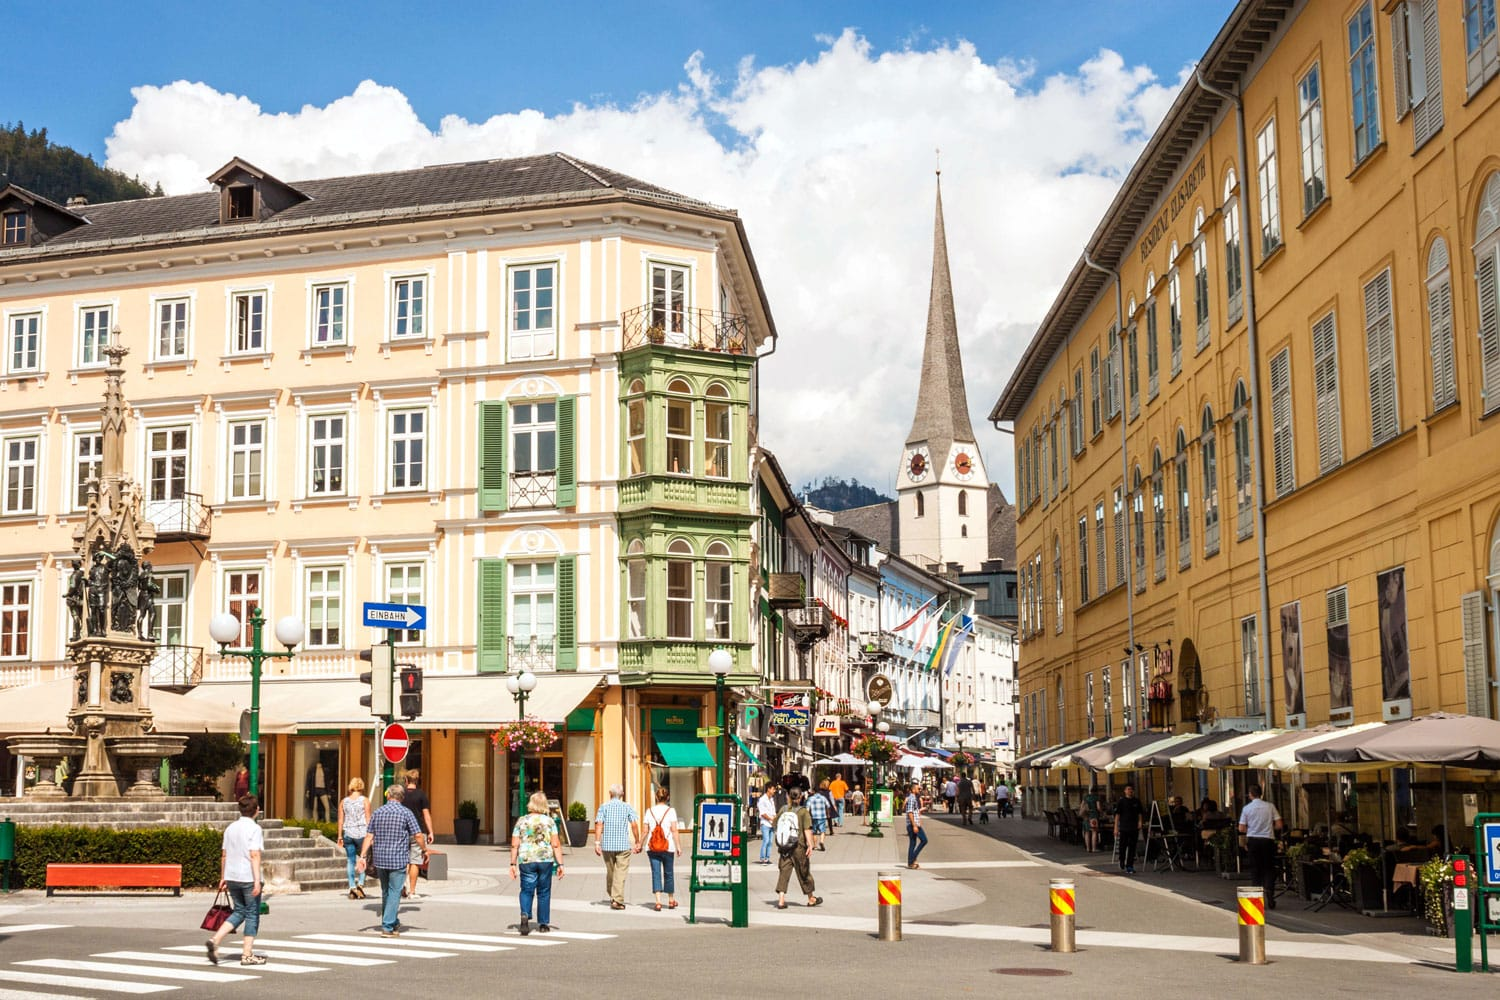 Schroepferplatz and Pfarrgasse, center of the resort town Bad Ischl, place for sightseeing, shopping and relaxing.